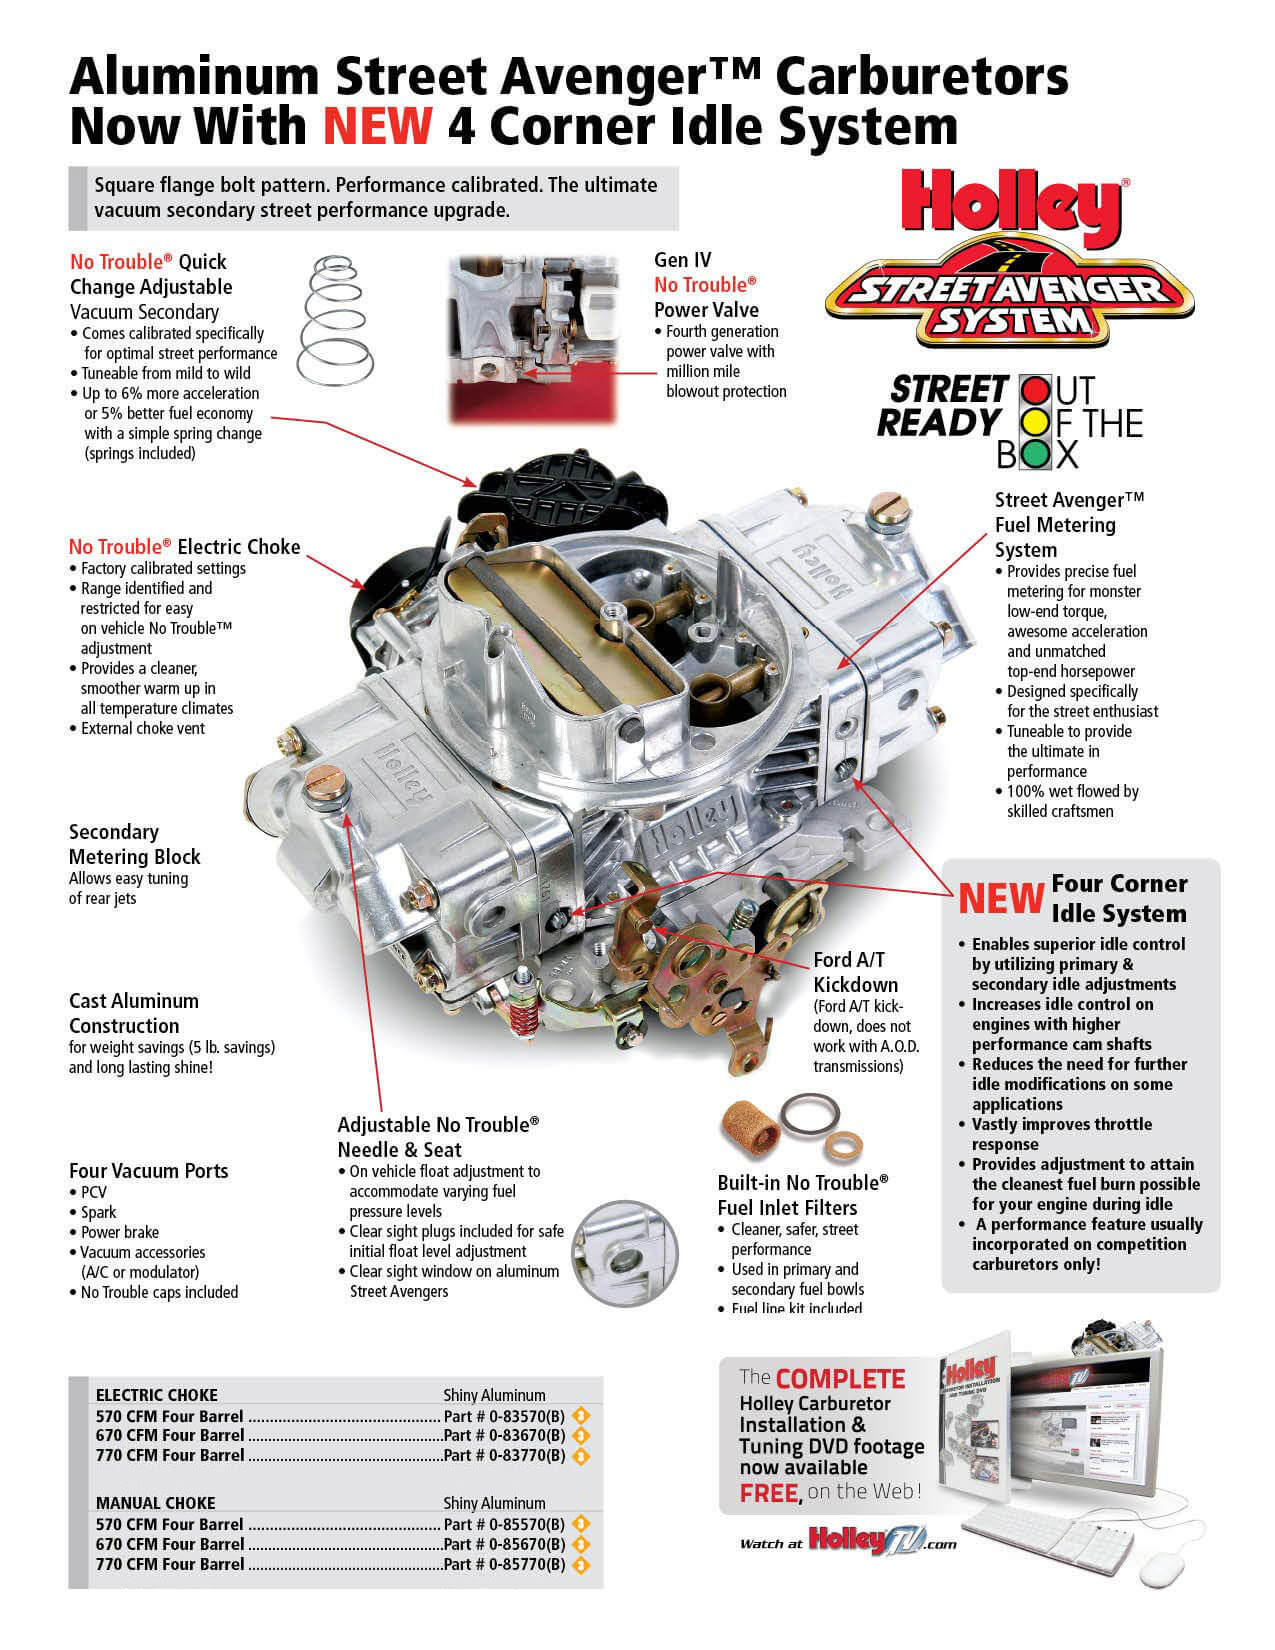 Holley Carb Specs